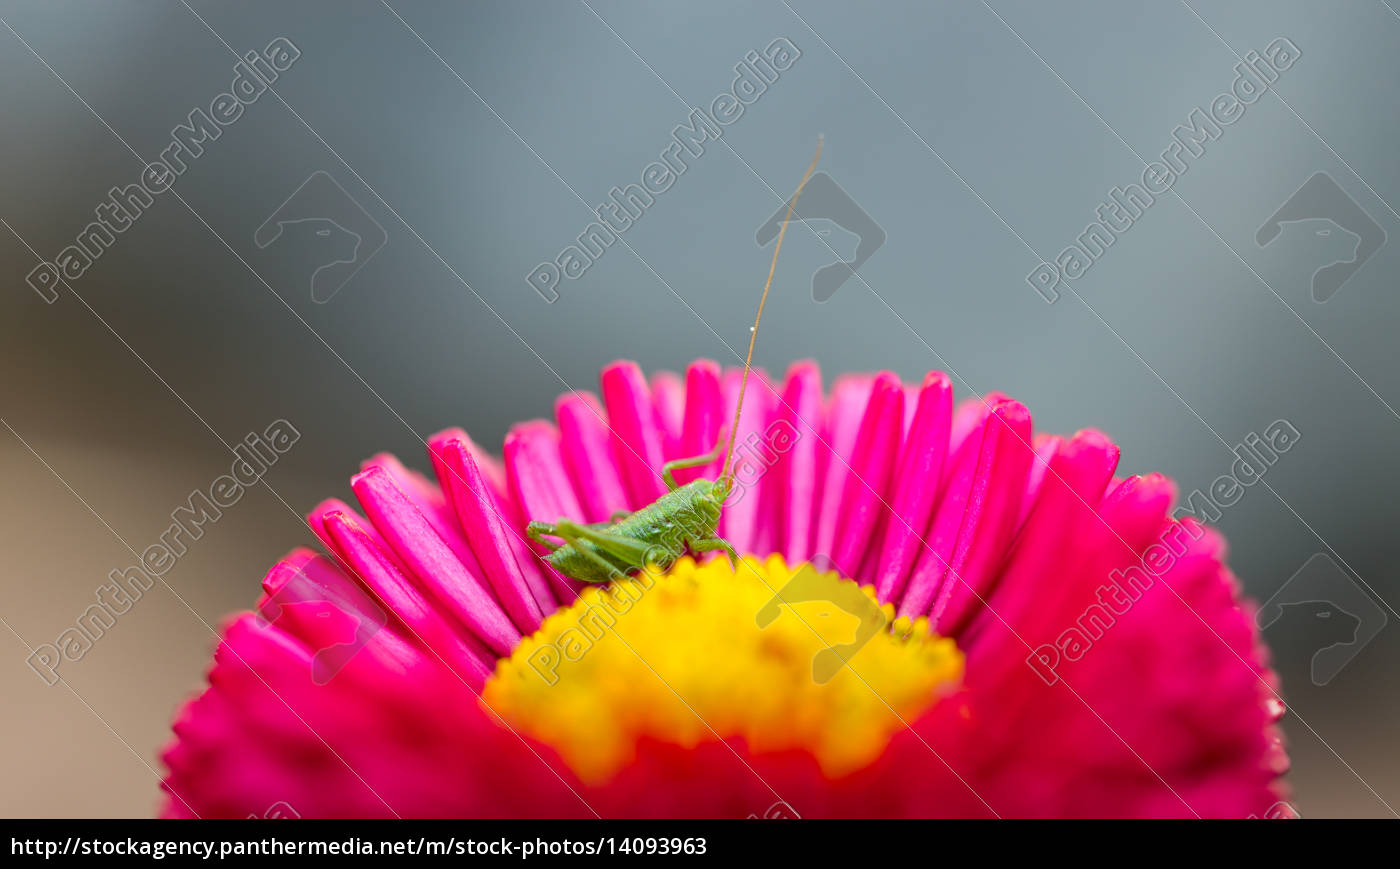 small, grasshopper, sitting, in, a, flower - 14093963